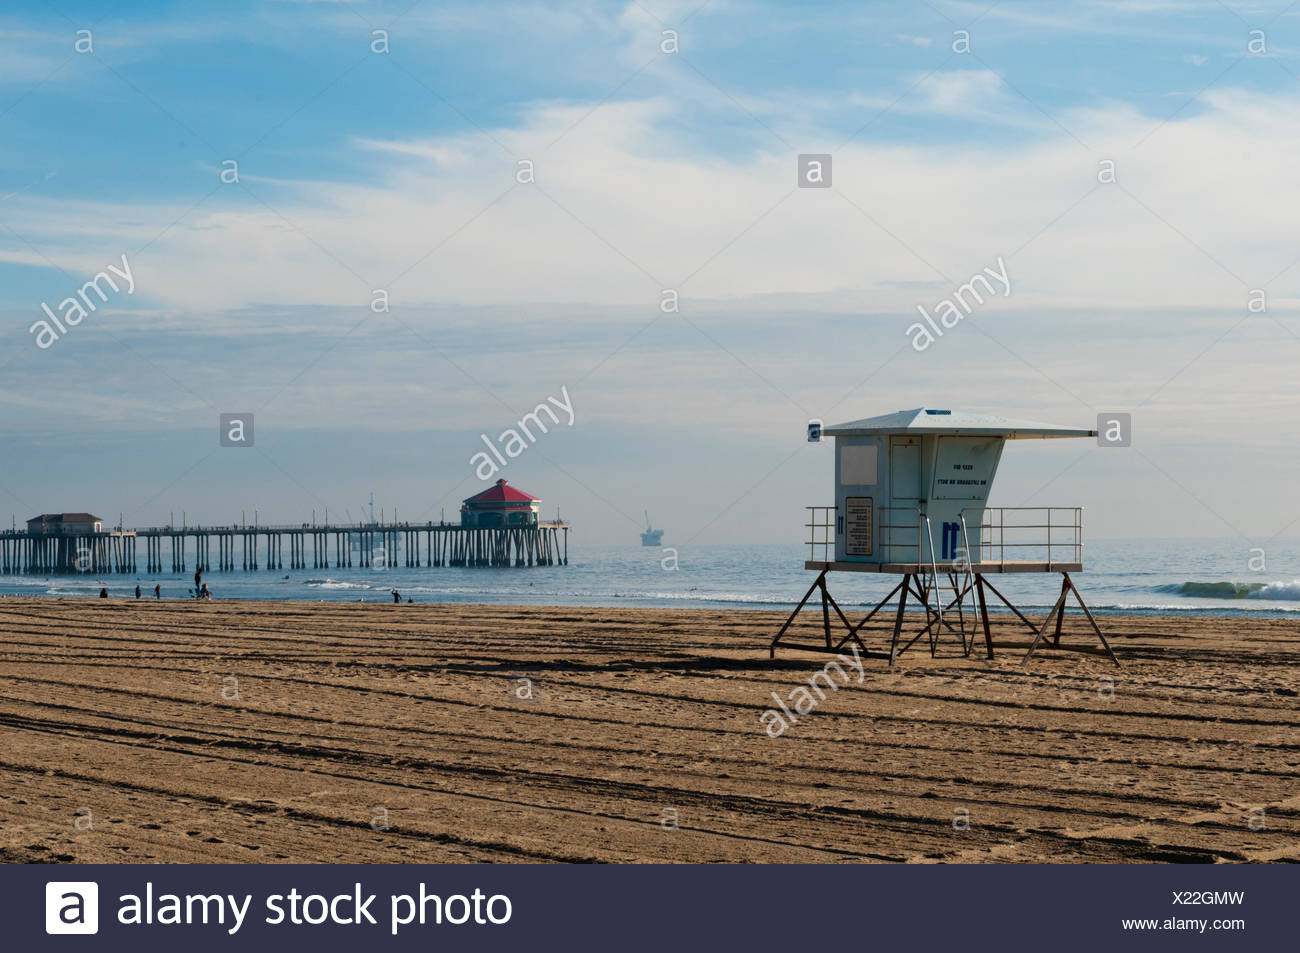 Life guard shack and pier on almost deserted Huntington Beach, on the Pacific Ocean. - Stock Image